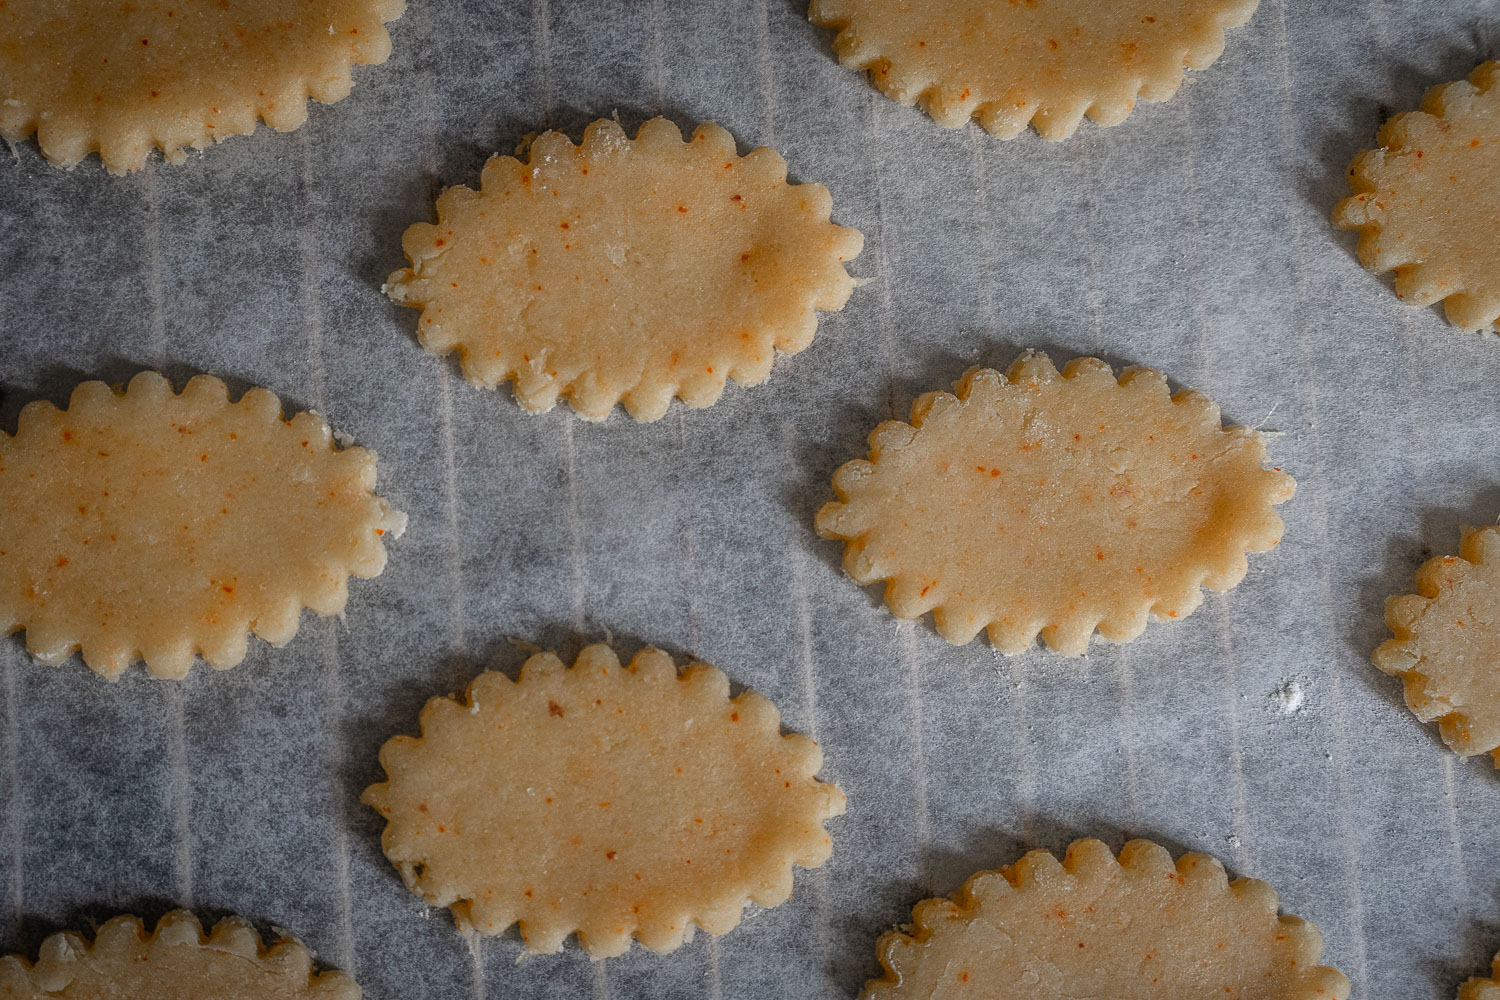 Ginger-and-Chilli-Biscuits-ready-for-the-oven-detail-04039.jpg